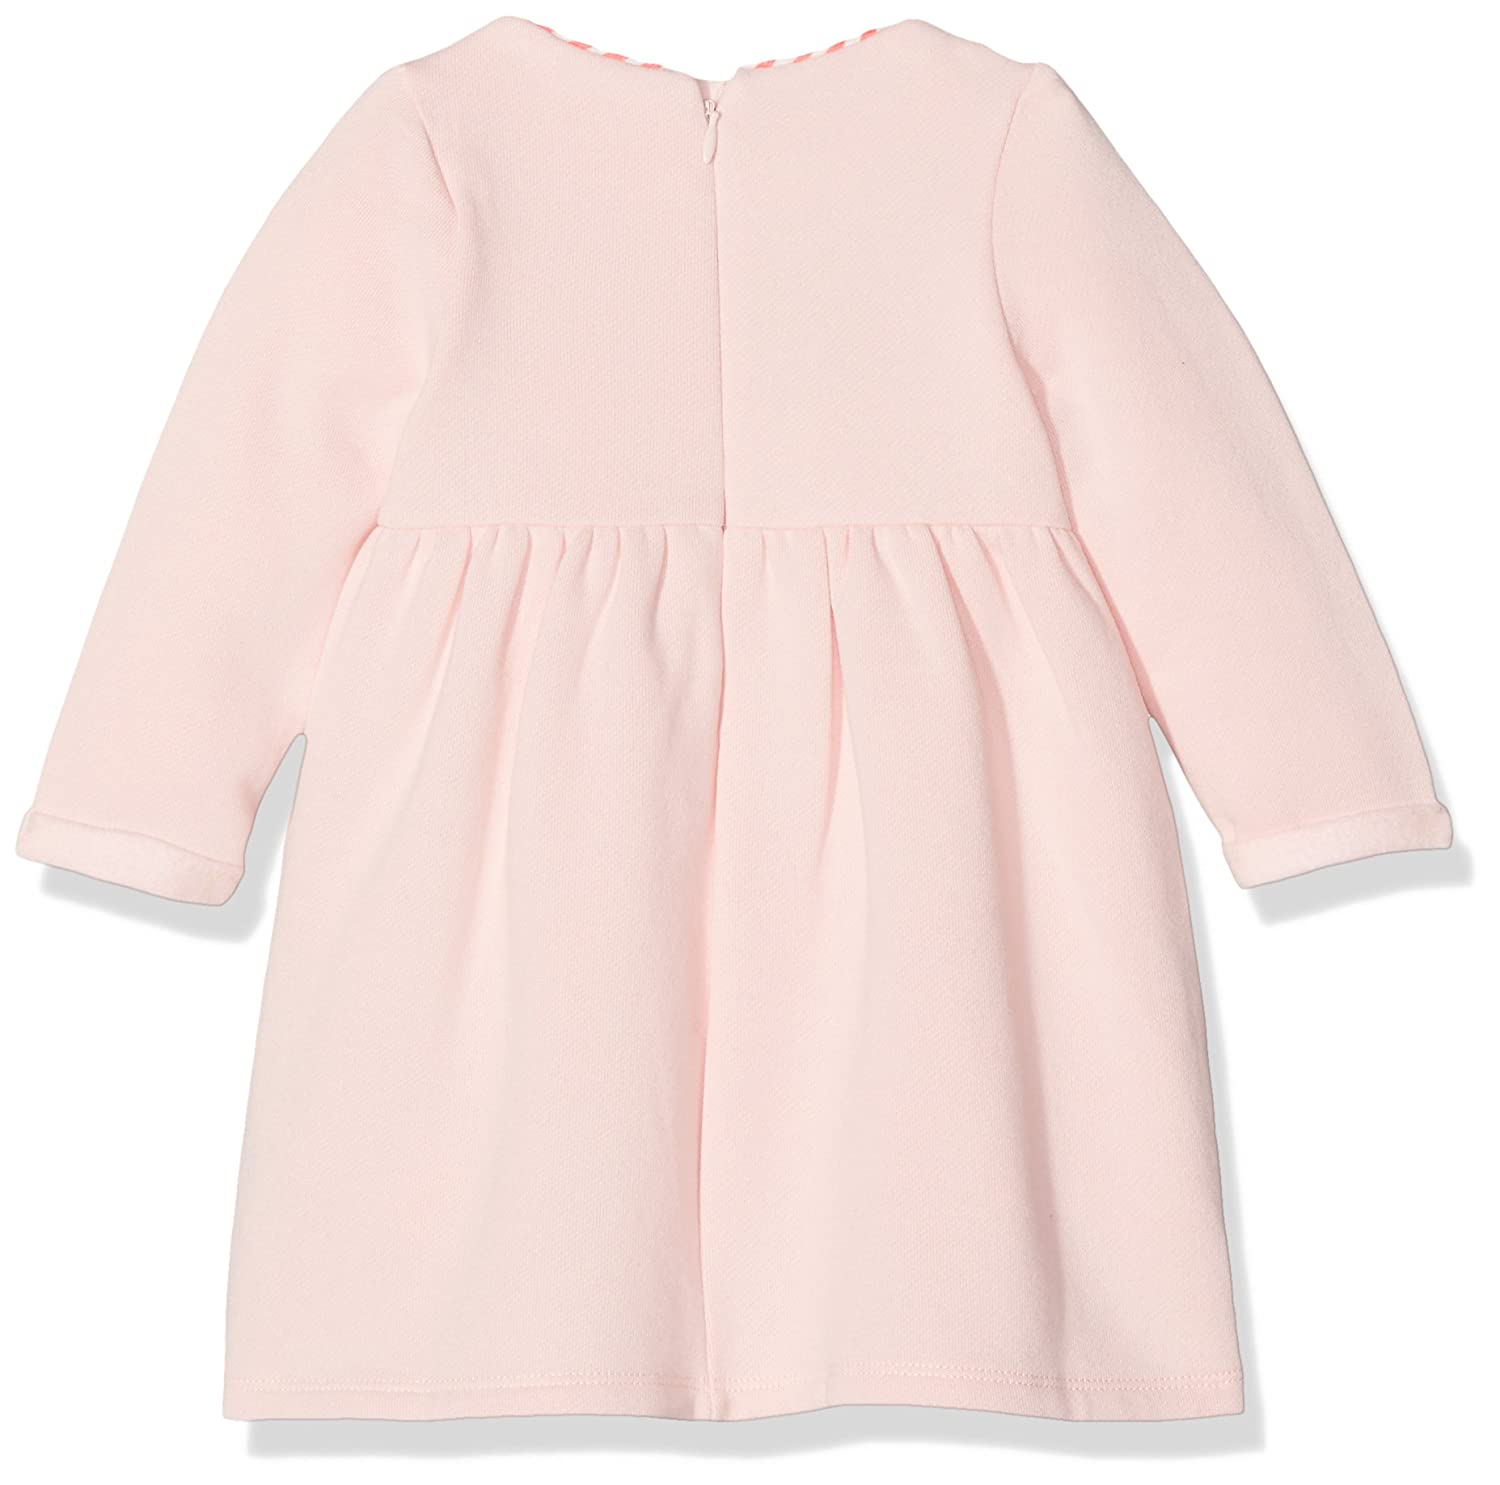 Billieblush Girls Robe Party Dress